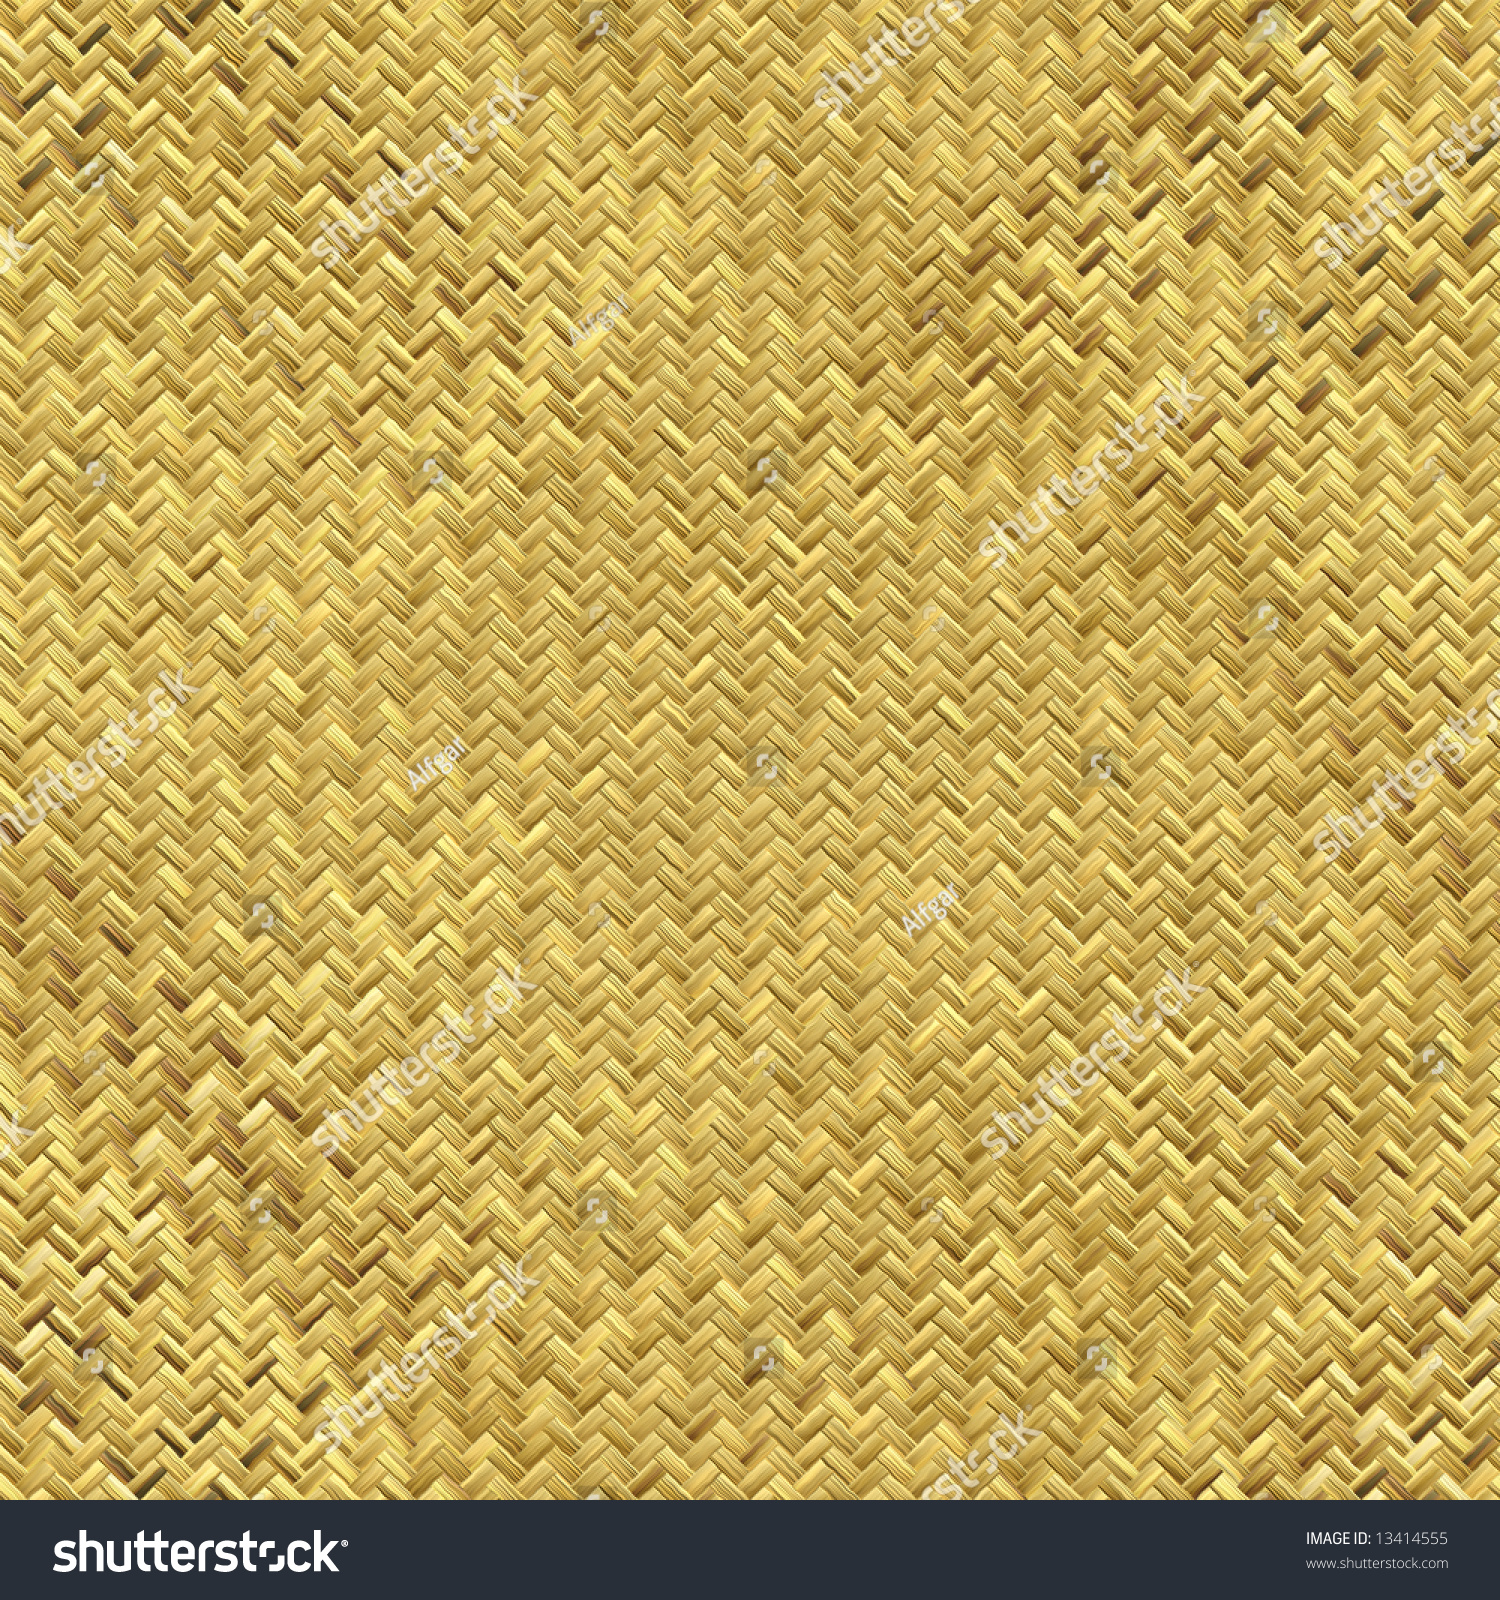 Free Basket Weaving Patterns Pictures : Angled basket weaving pattern seamless texture stock